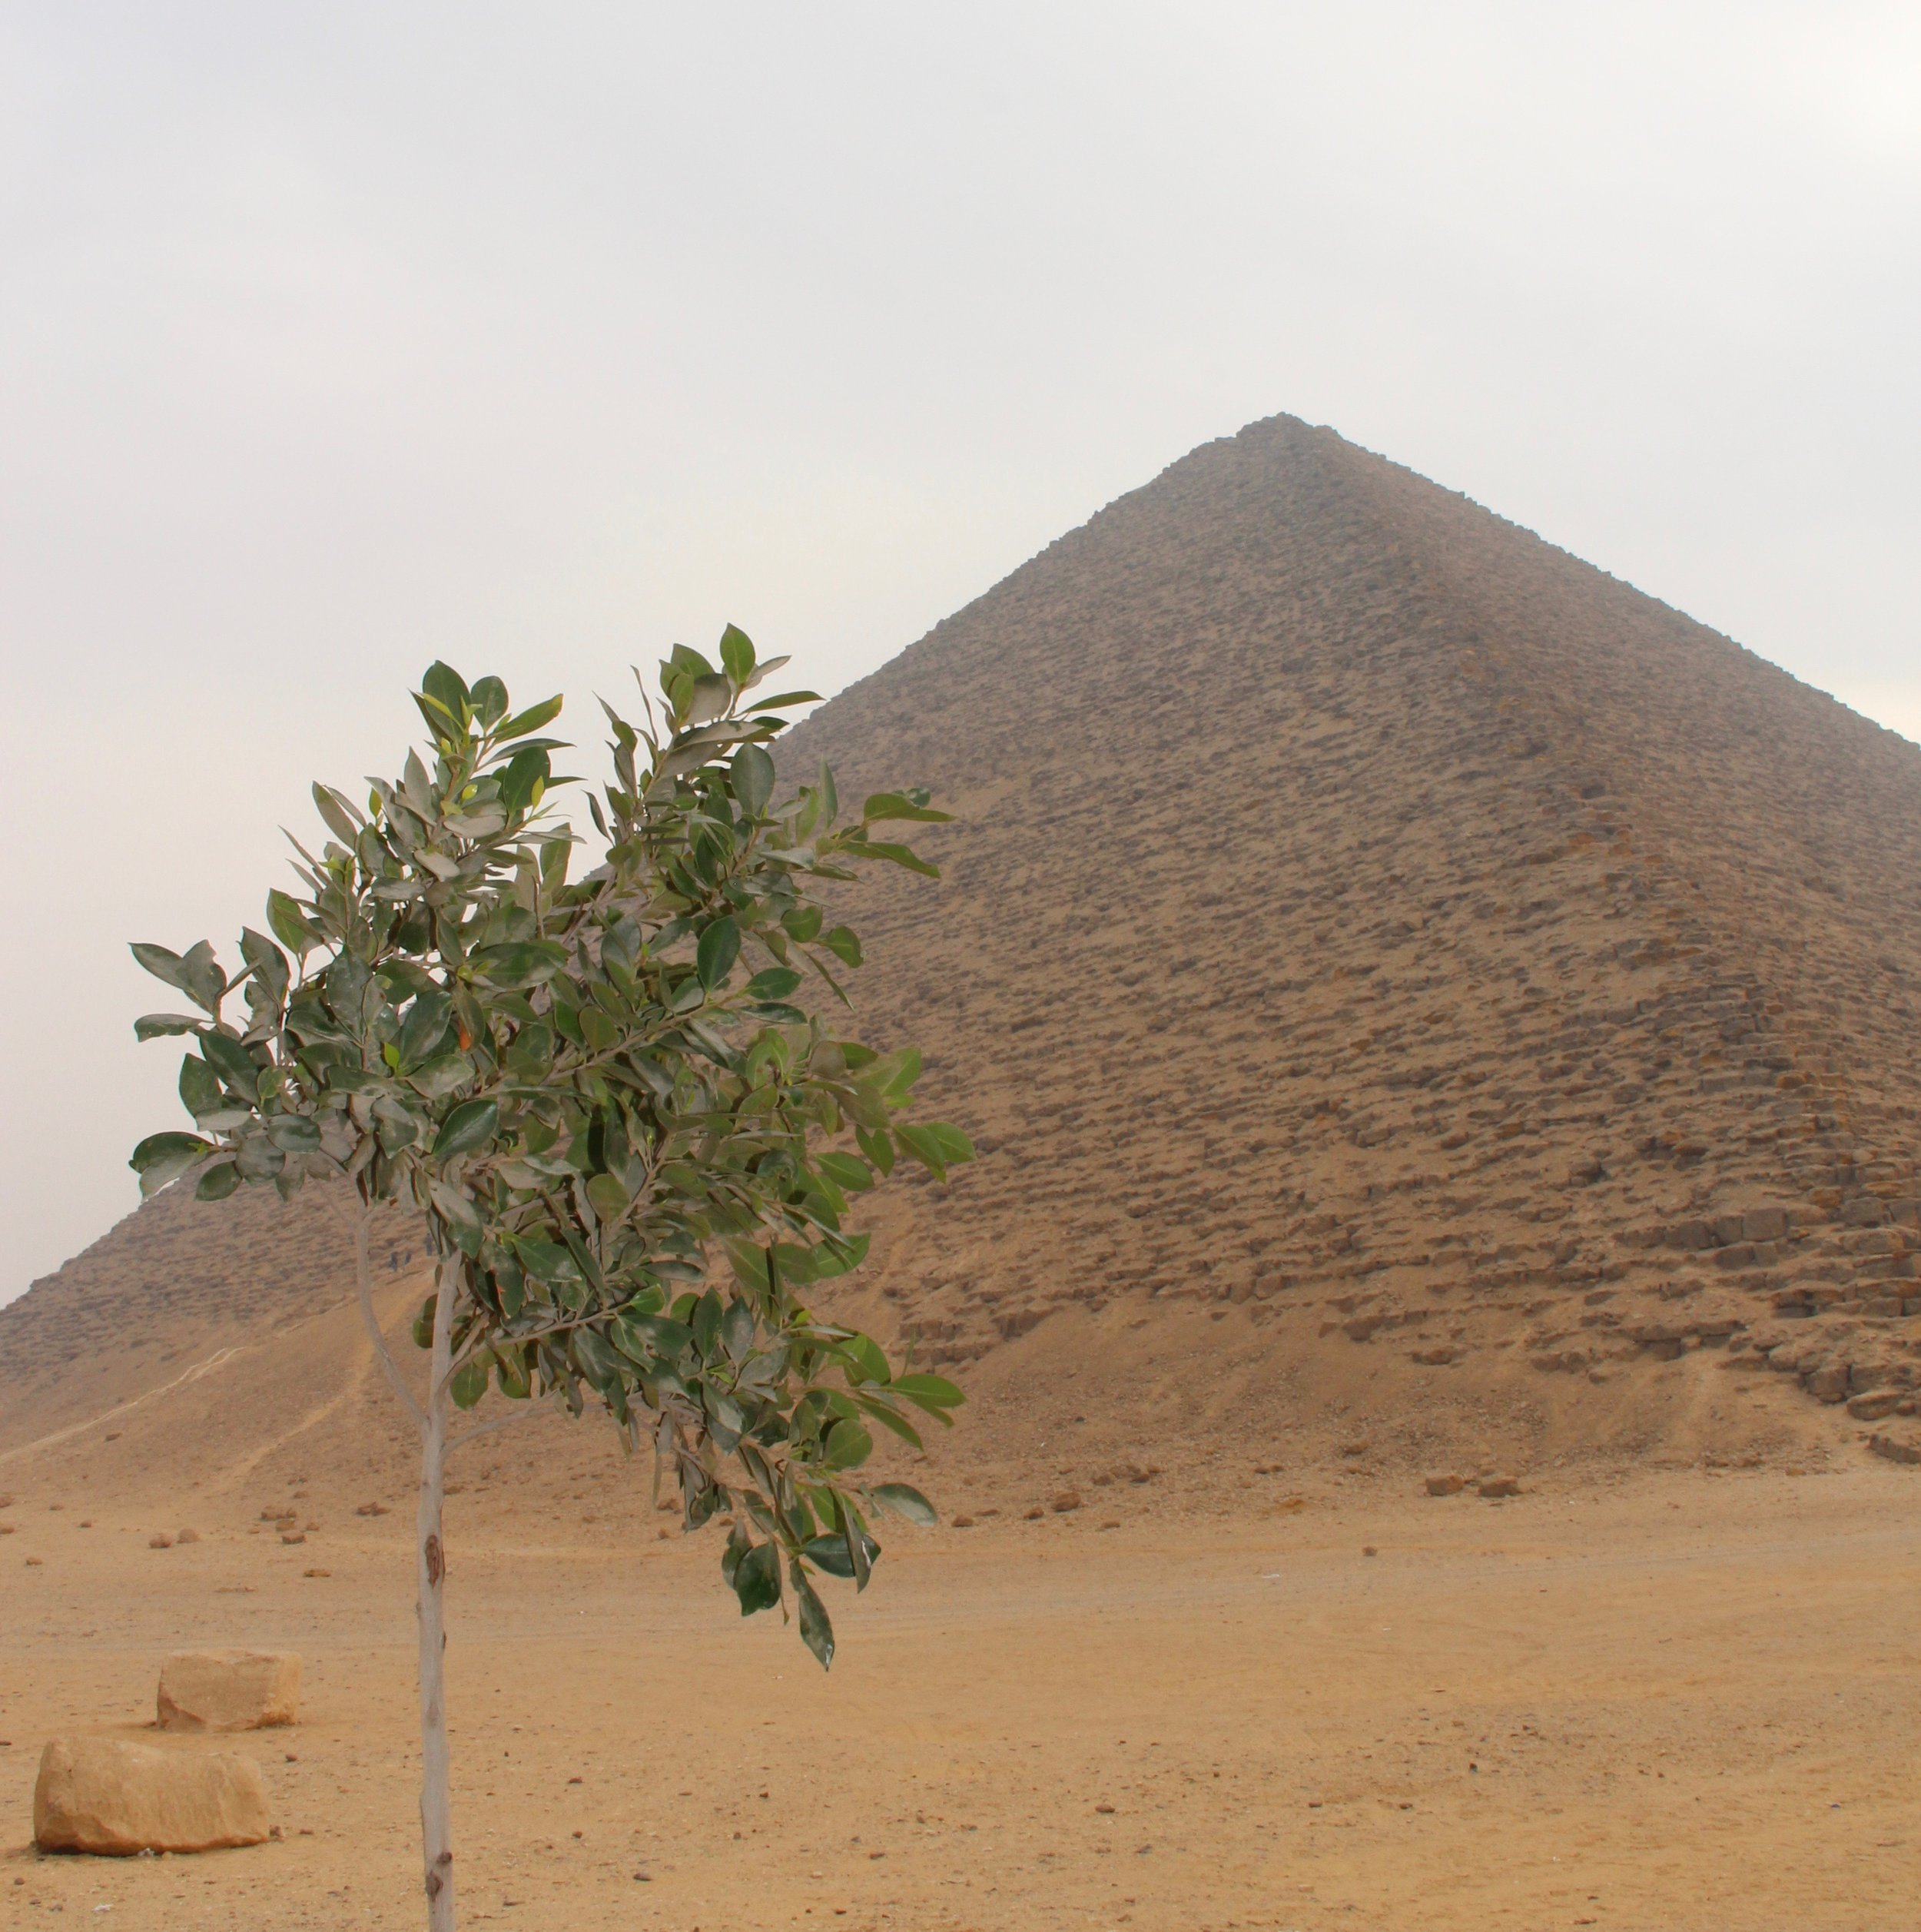 And then, at the Red Pyramid, a perfect pyramid.